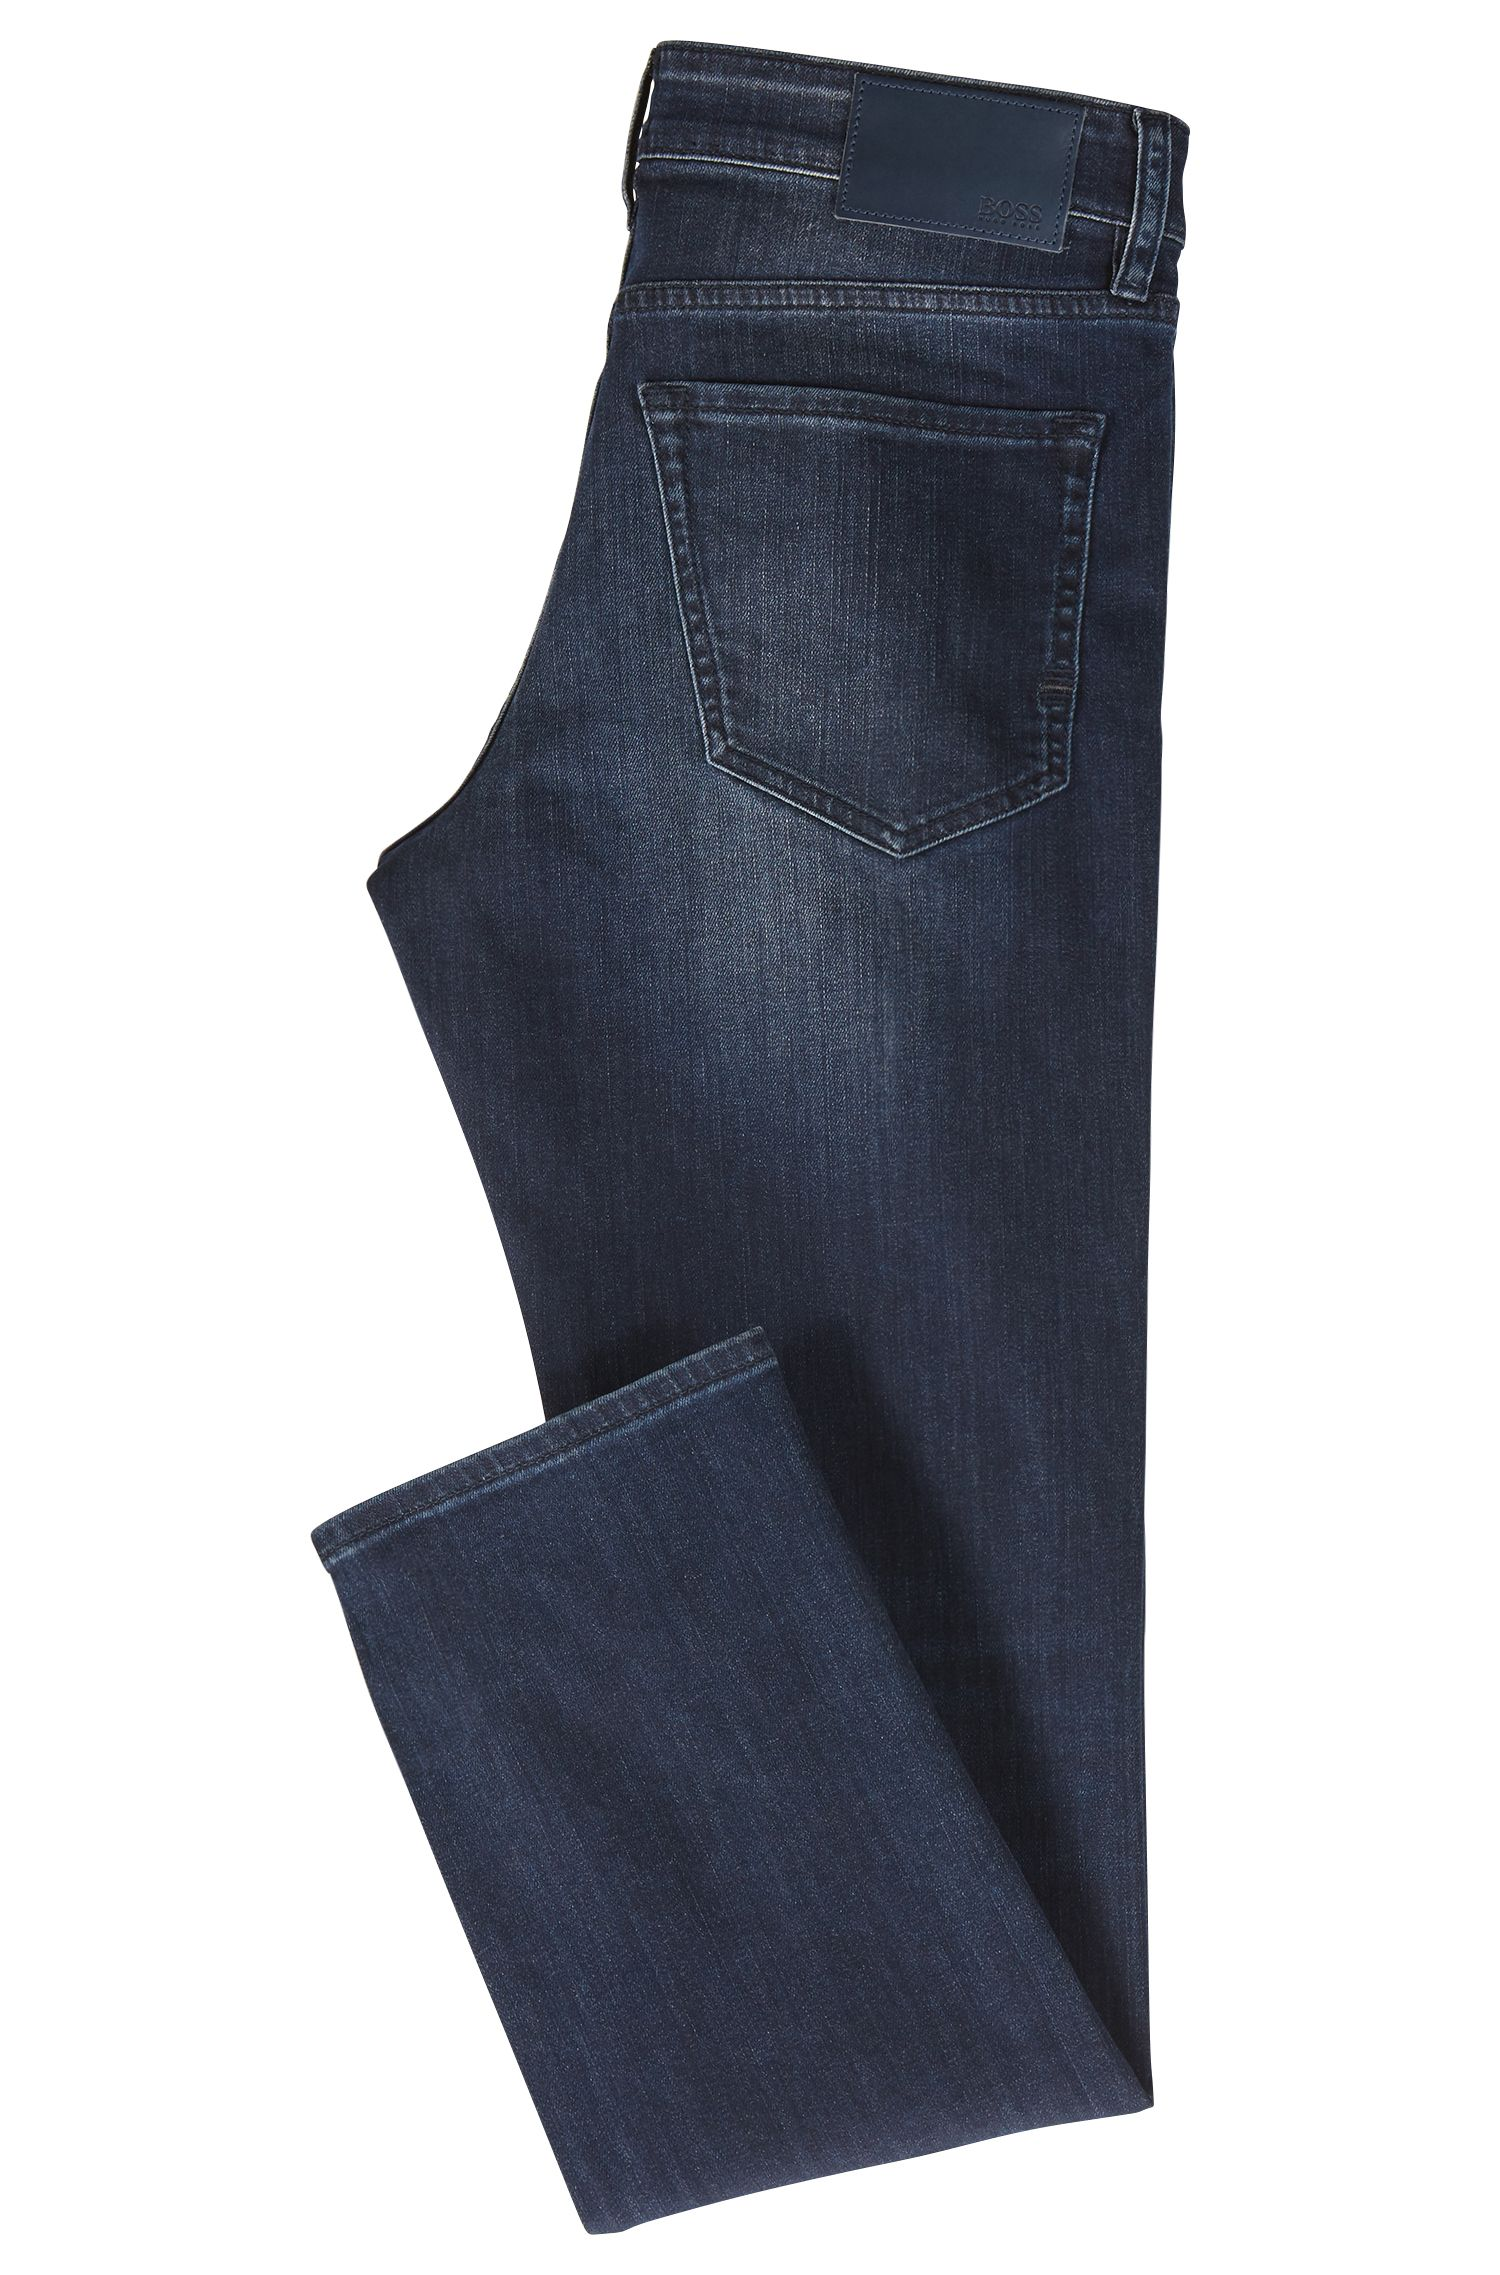 Regular-Fit Jeans aus elastischem Stone-washed Denim